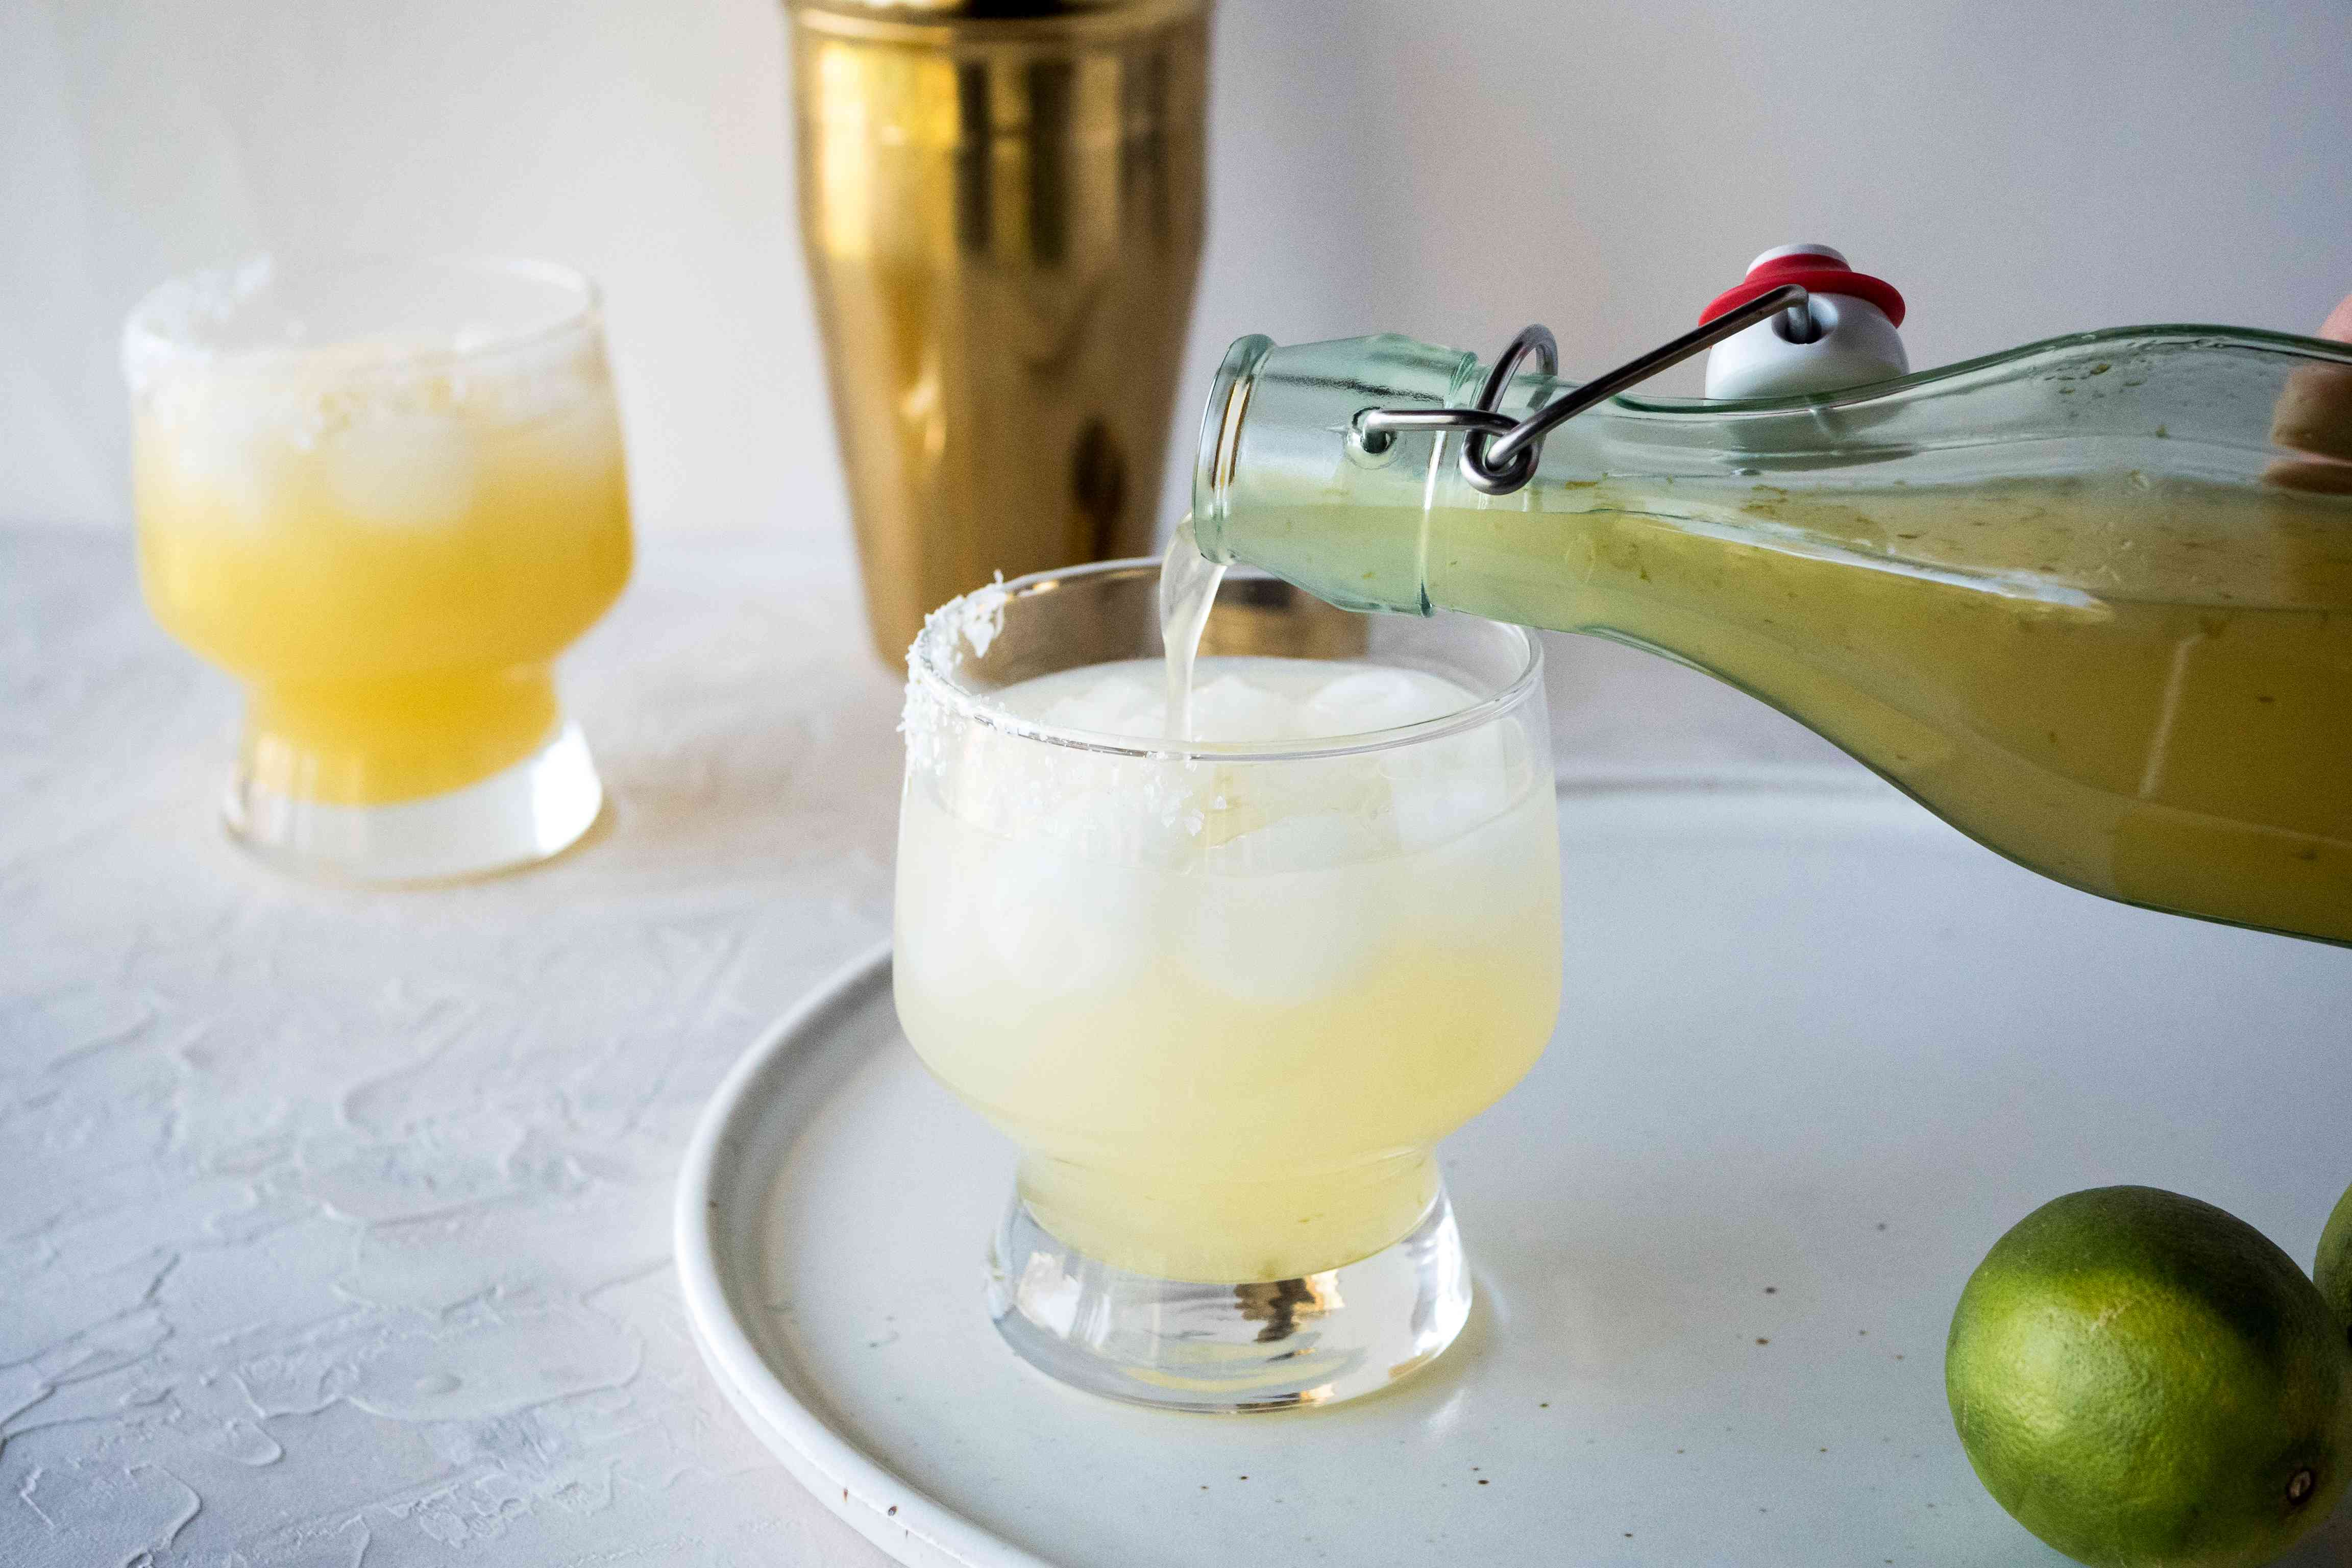 The BEST margarita mix recipe poured into a glass with ice to make a margarita.